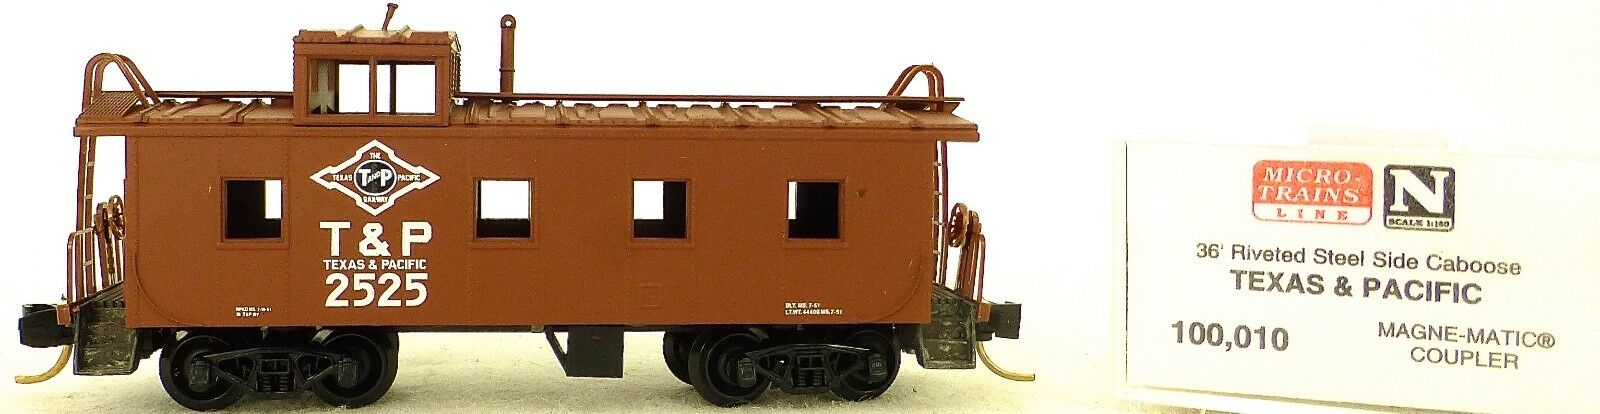 Micro Trains Line 100,010 Texas & Pacific 36' Riveted Steel Caboose 1:160  F Å